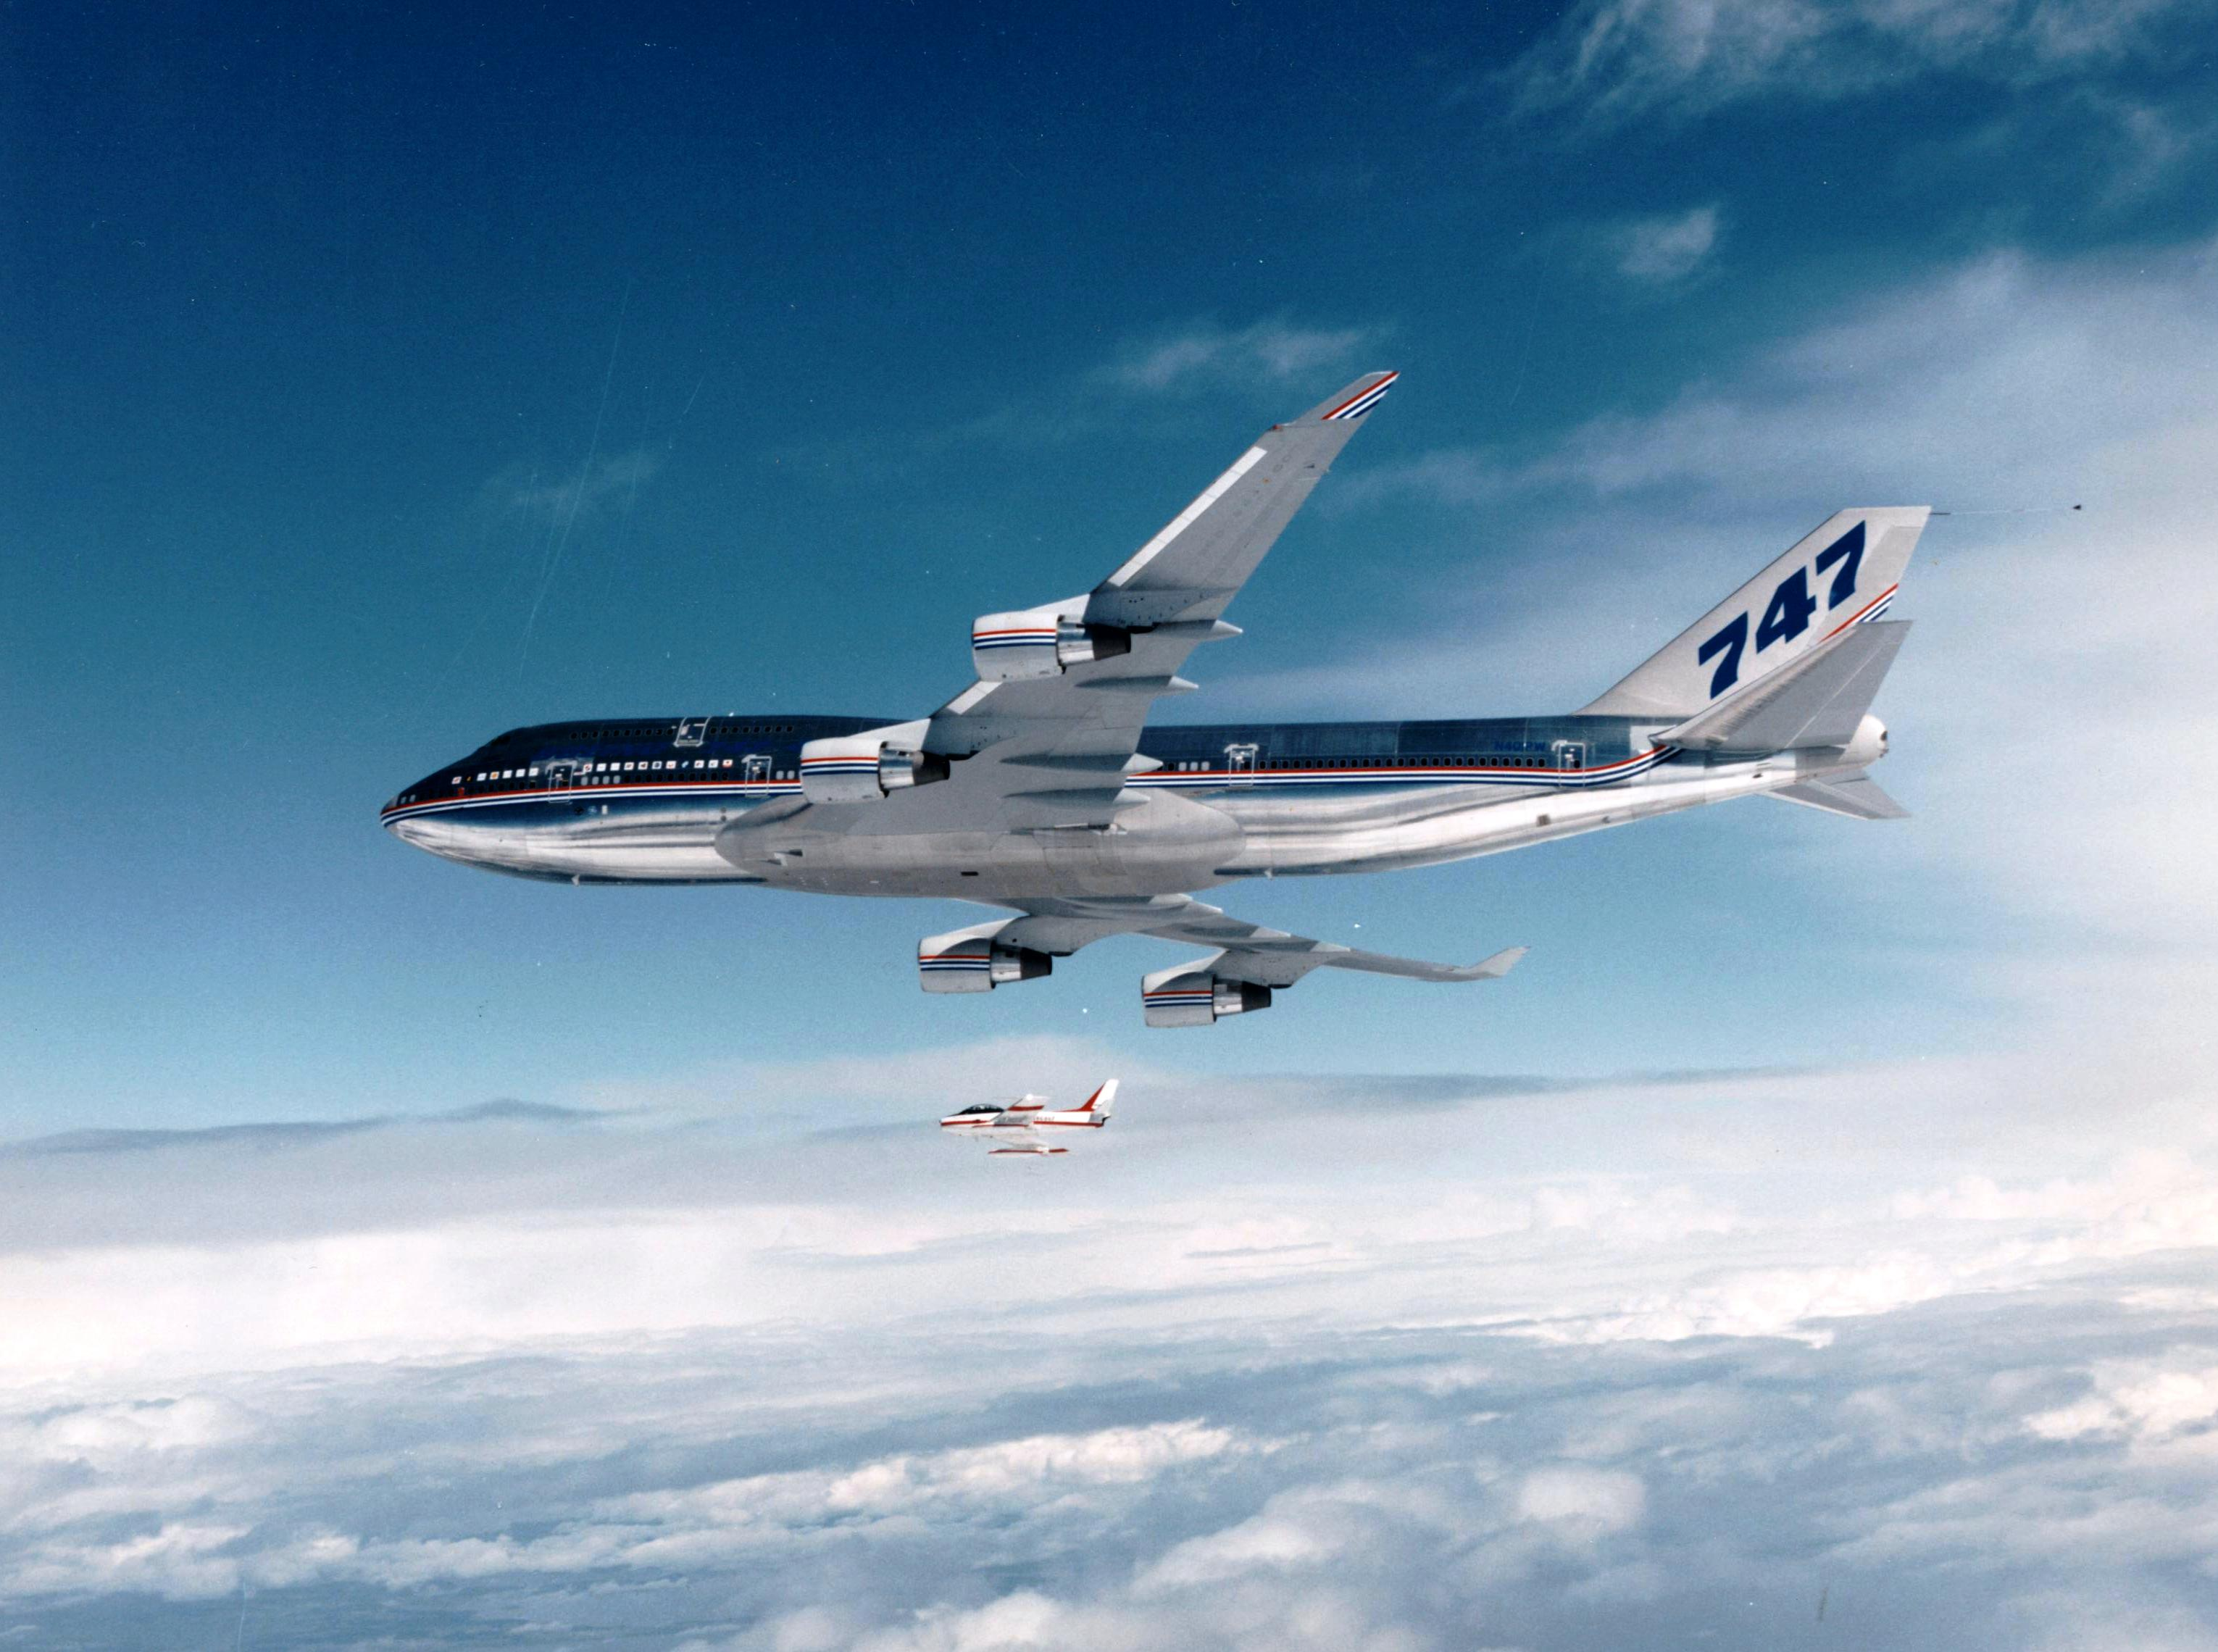 The World's First 747-400 To Fly Last Revenue Flight